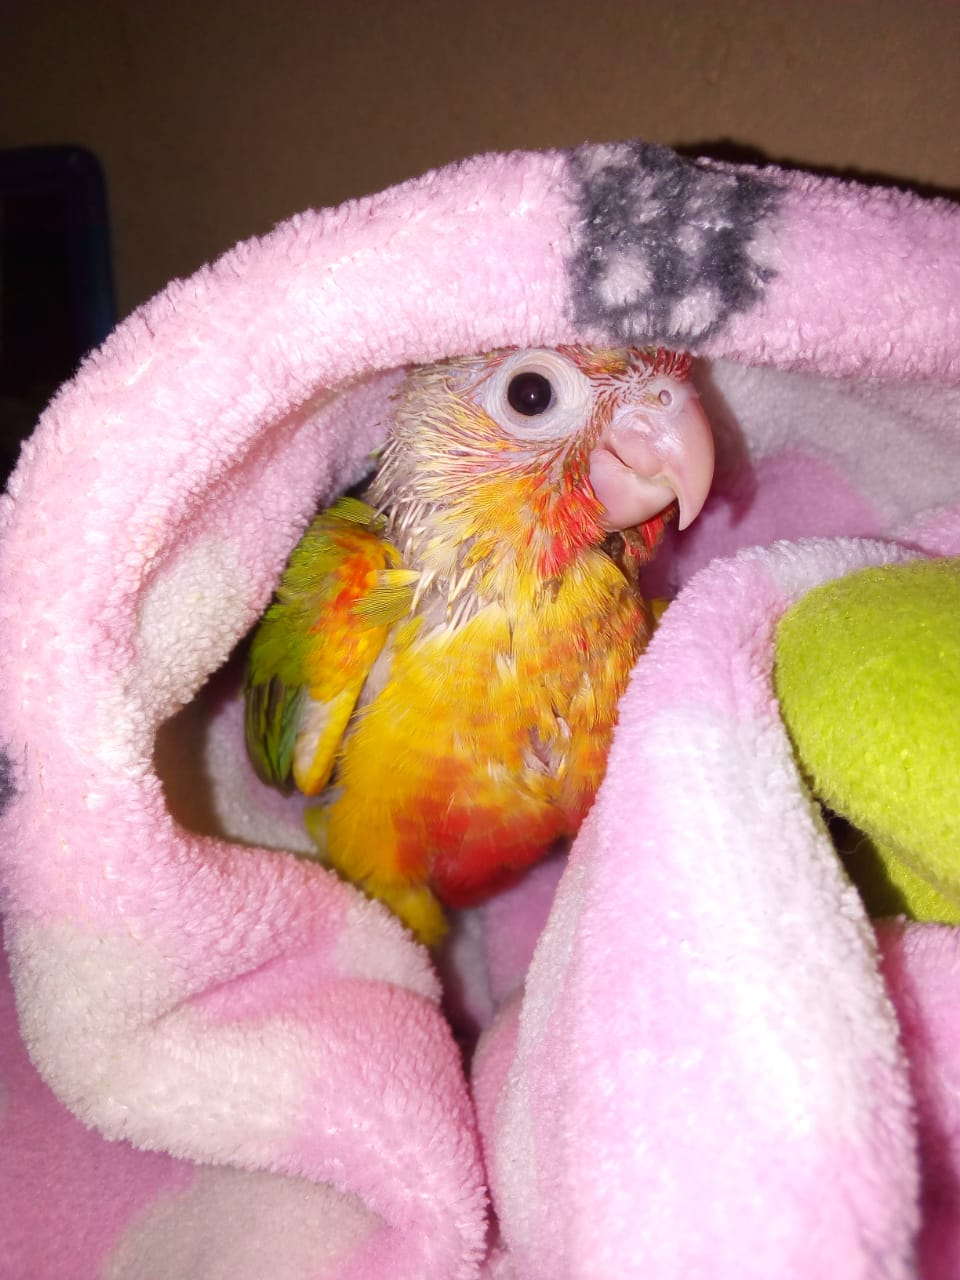 Missing parrot pineapple conure